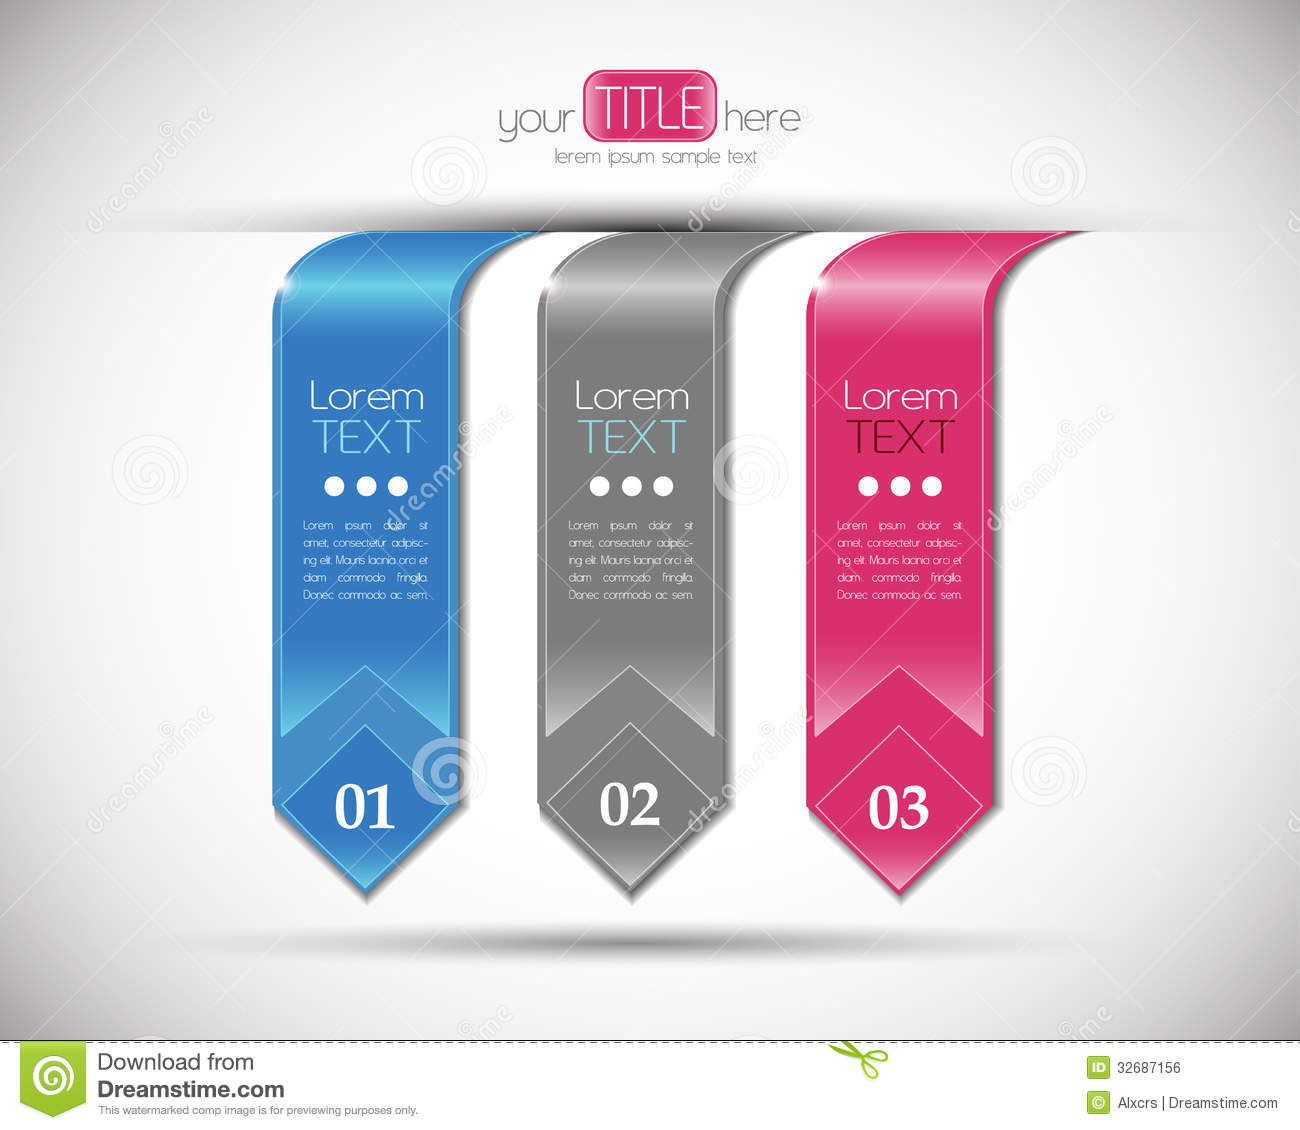 free graphic design templates - modern number banners design template royalty free stock